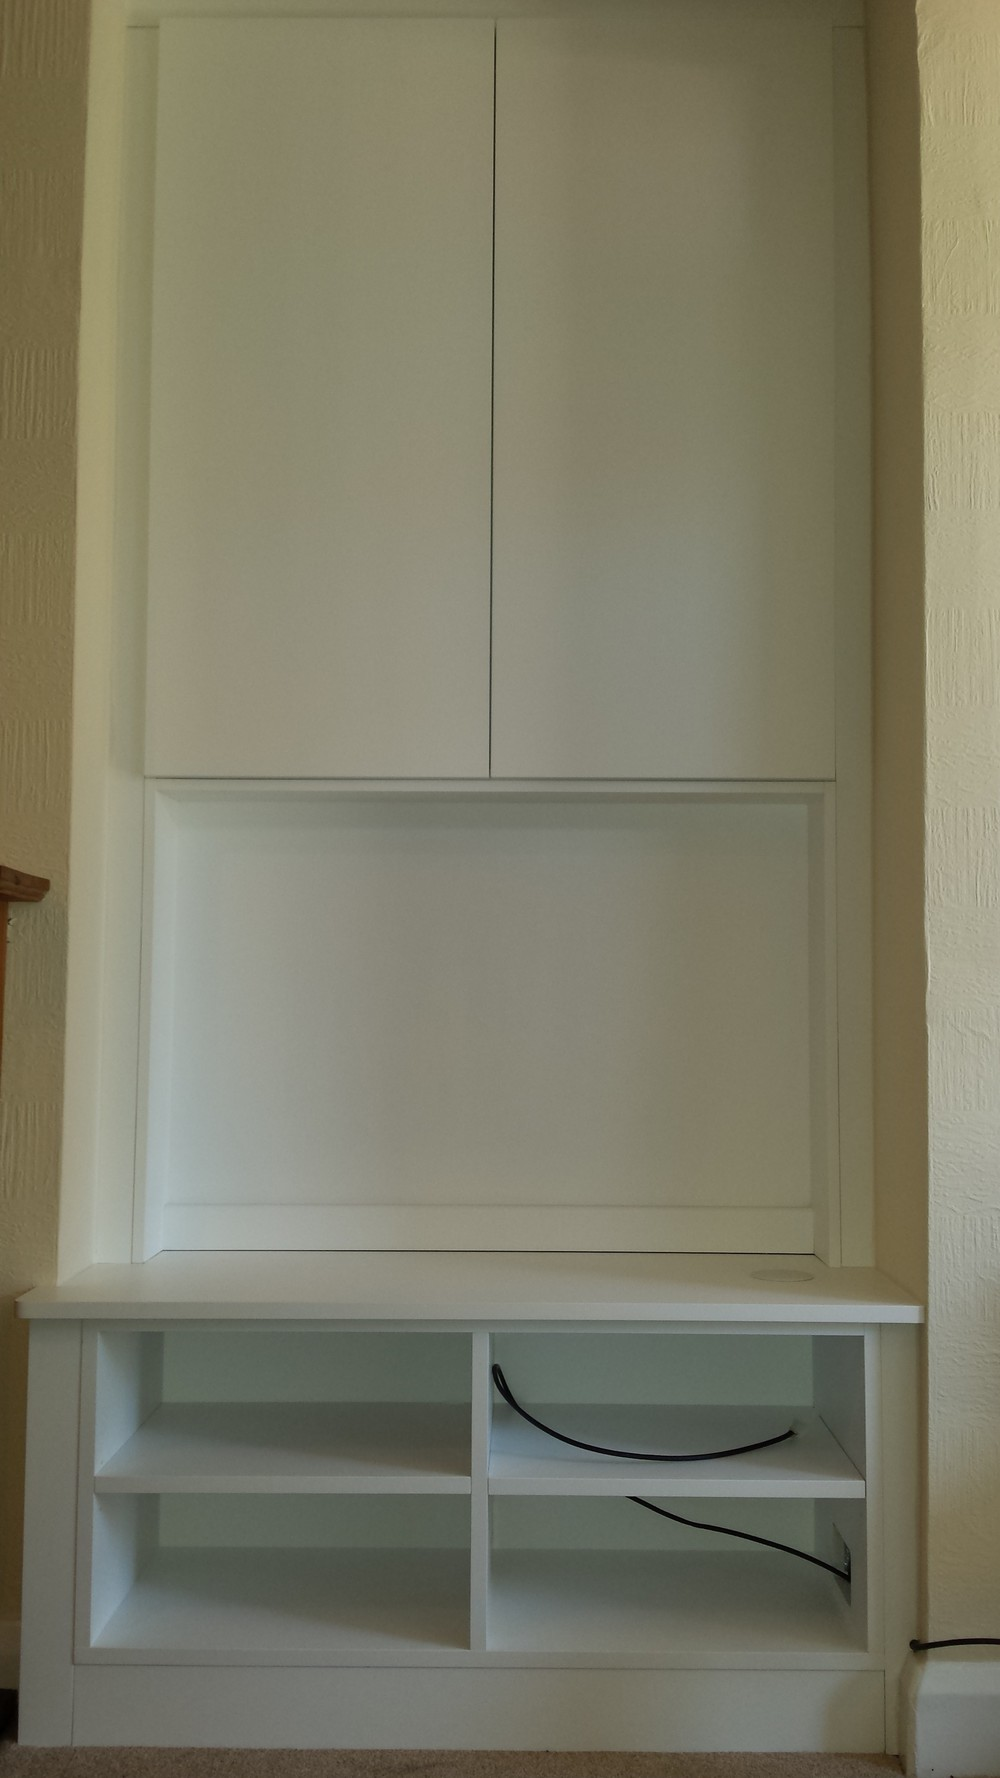 TV enclosure with cupboards above